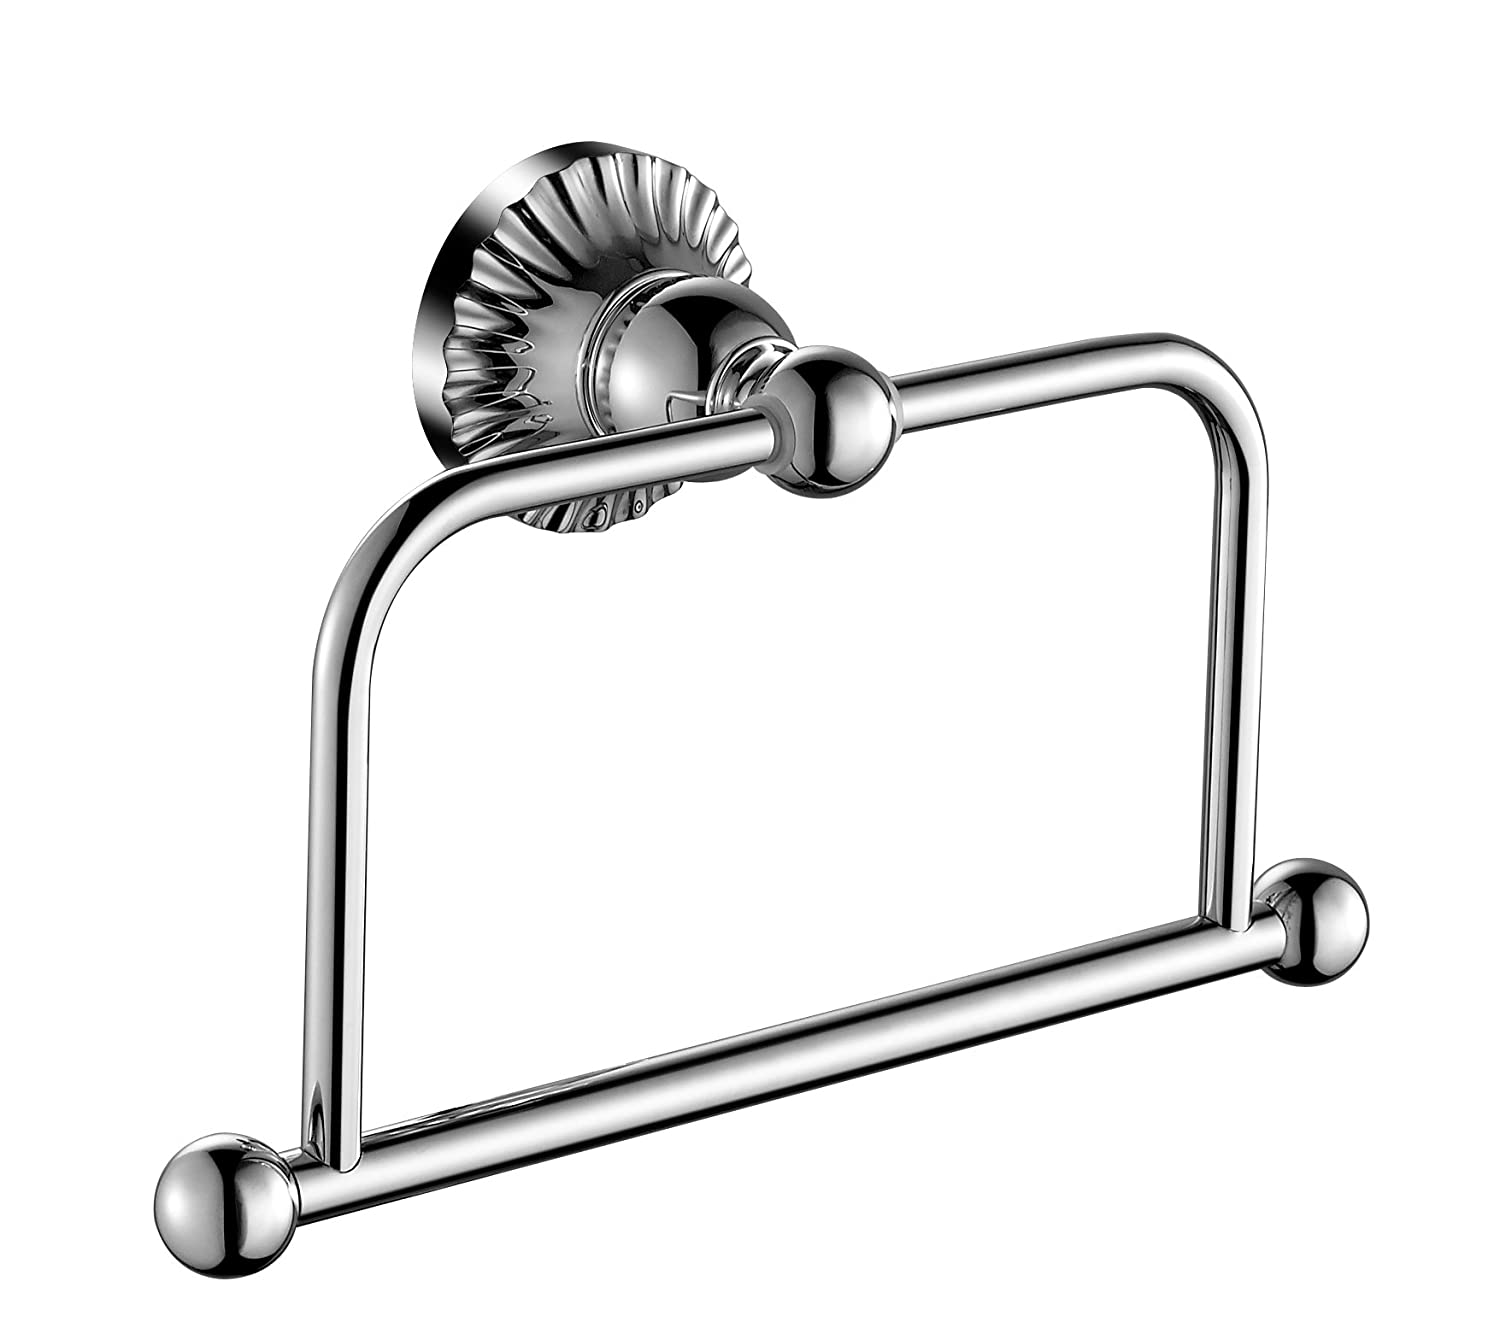 Aquatrend 5982 Bathroom Set Brass Holder Robe Hook WALL HANGING Chrome Finish